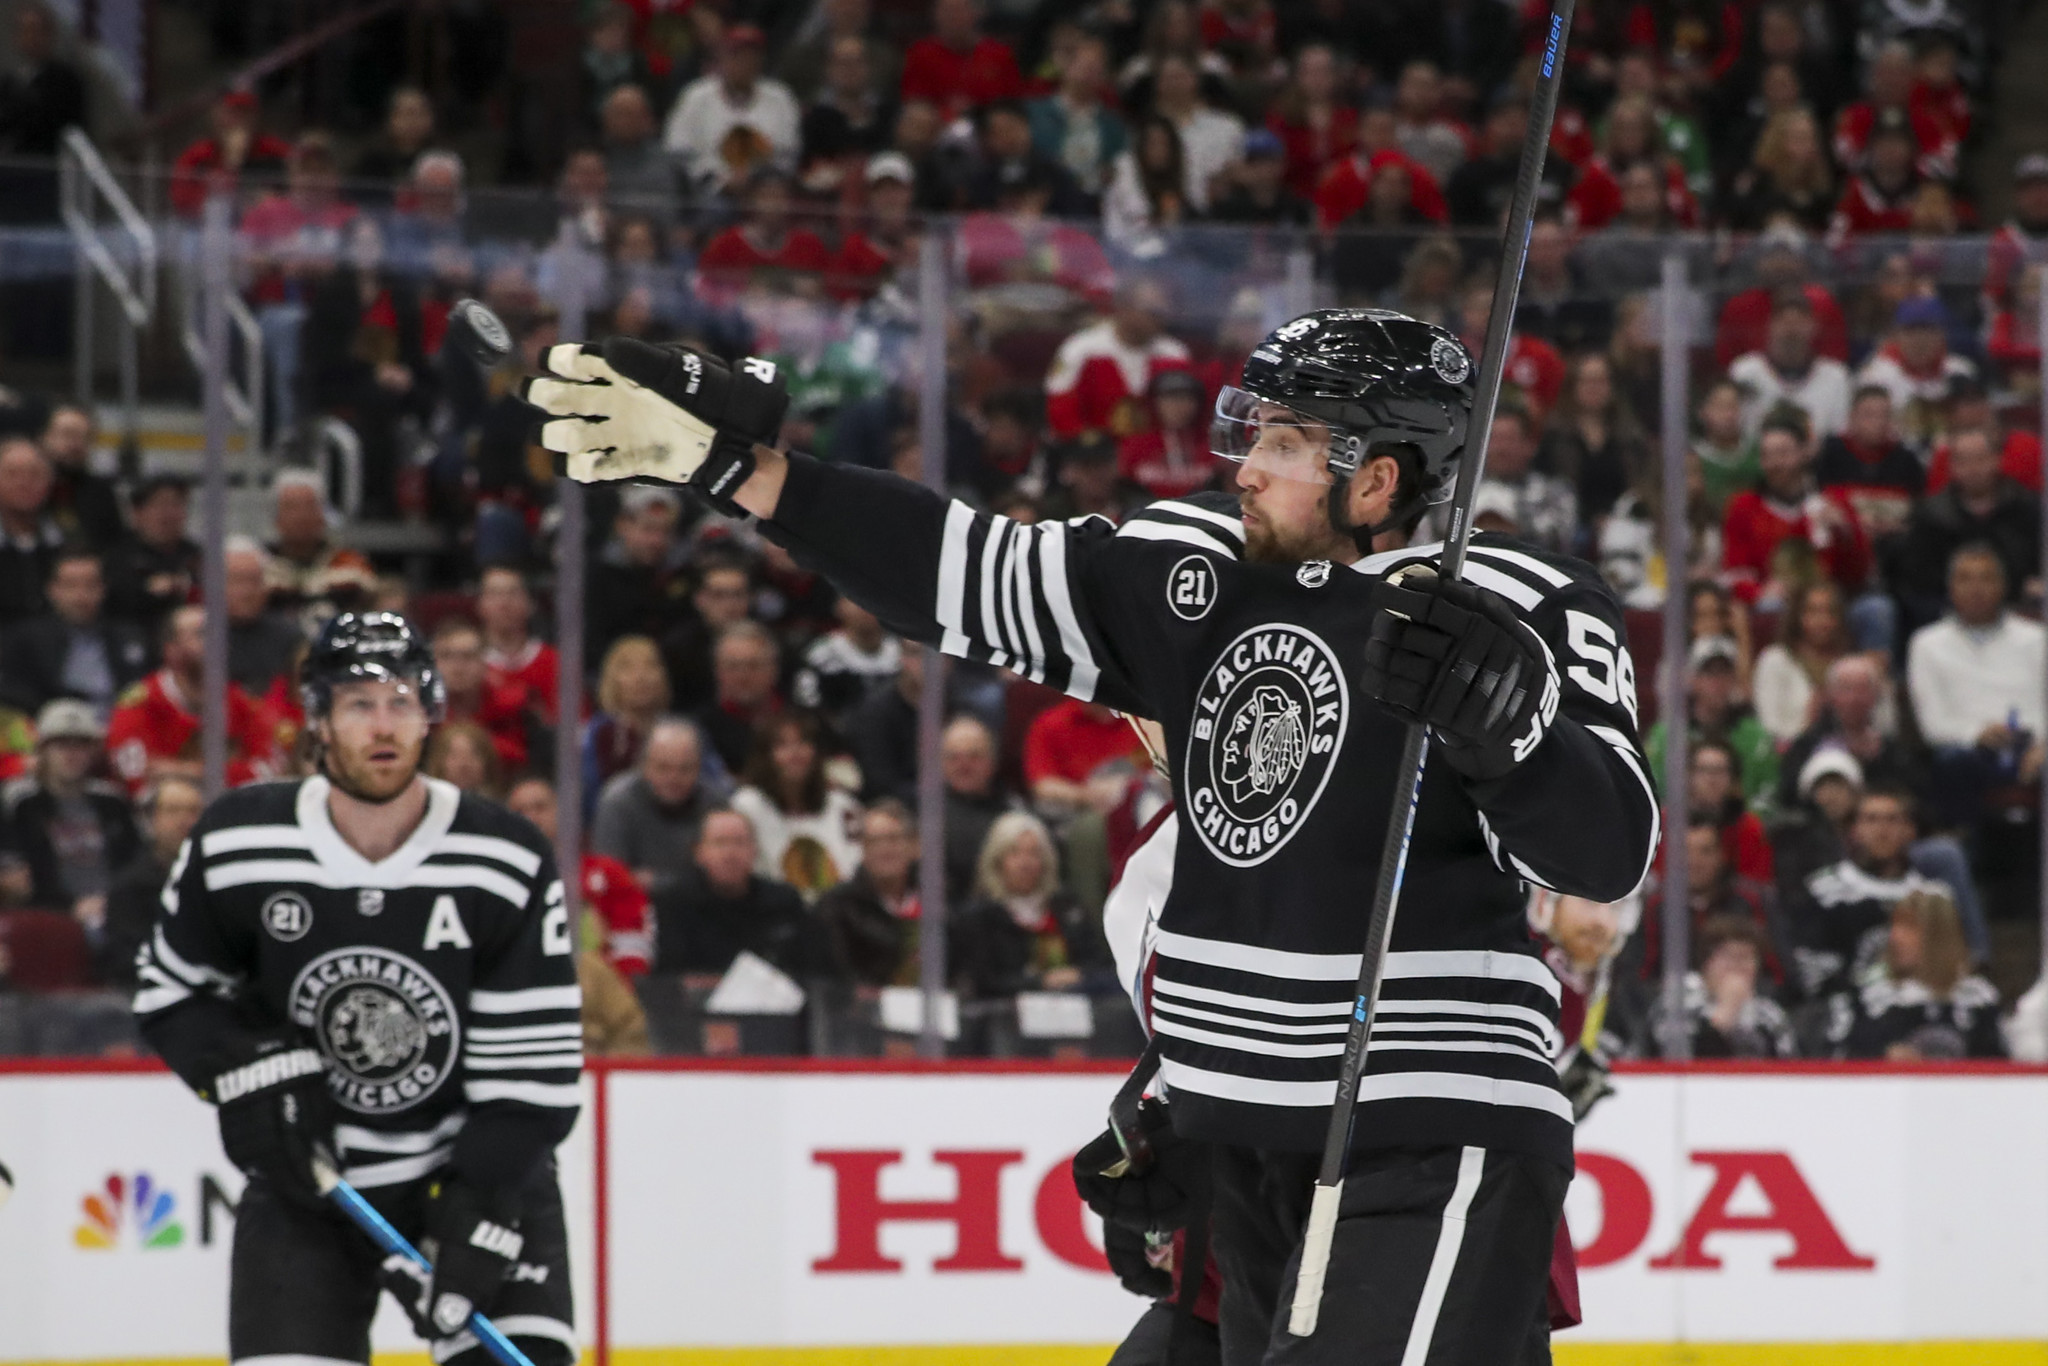 Duncan Keith's overtime goal gives Blackhawks 2-1 win over Avalanche to keep playoff hopes alive